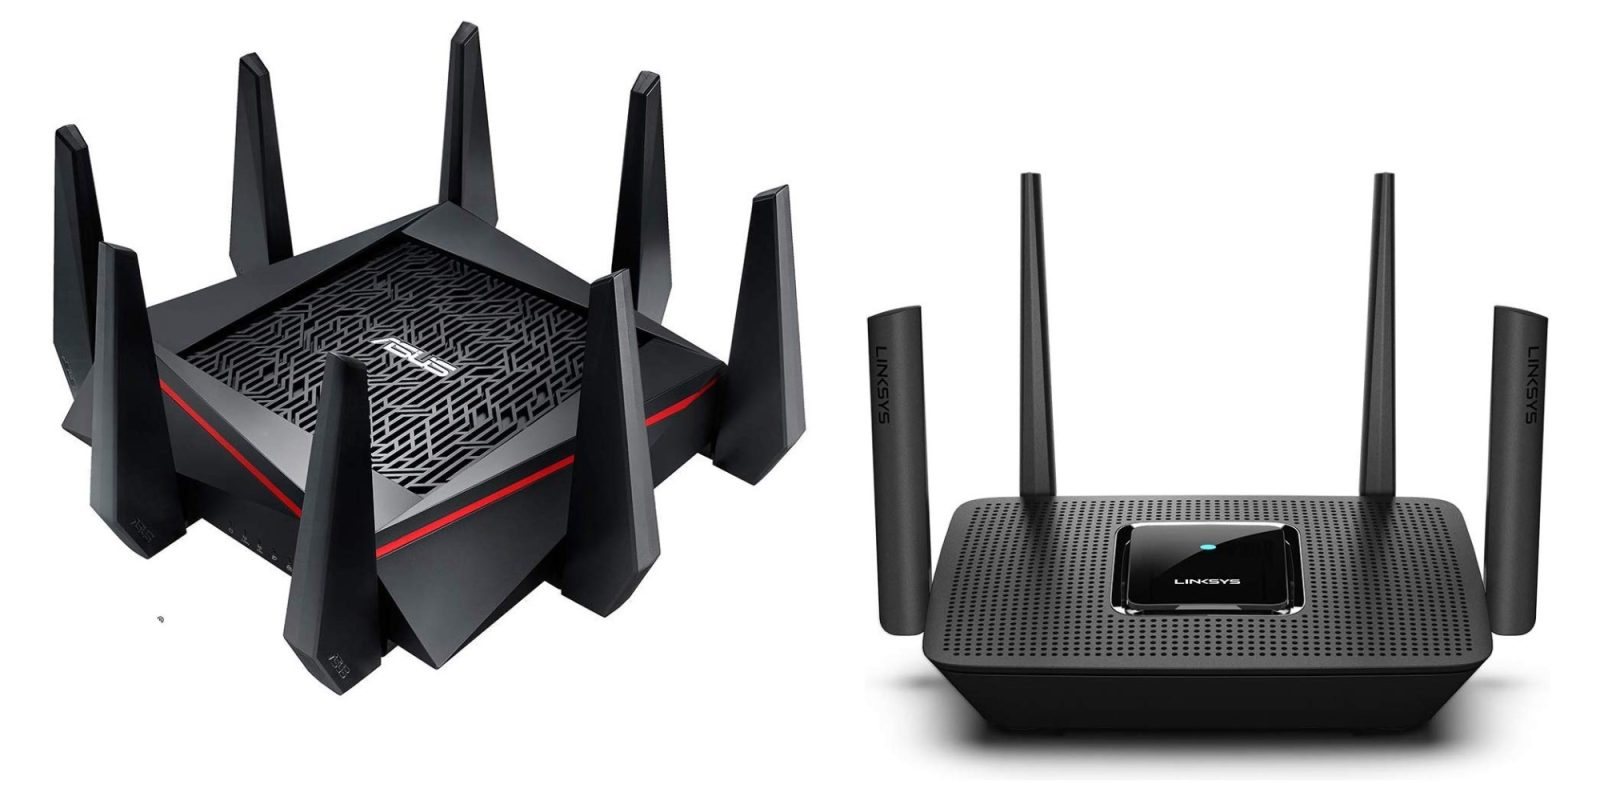 ASUS Tri-Band 802.11ac Router offers 5Gb/s speeds: $190 ($75 off), more from $30